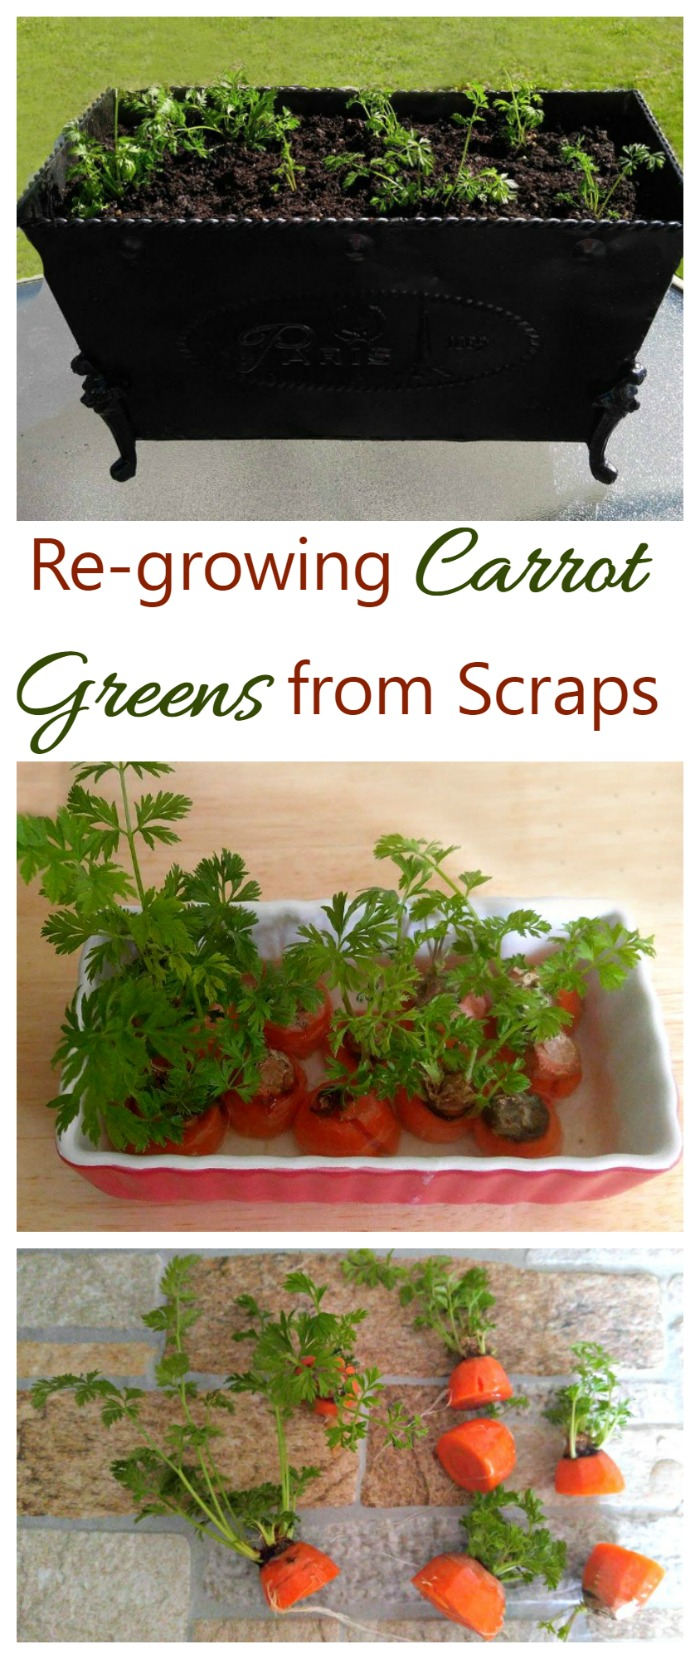 Re-growing carrot greens from scraps is a fun and easy project that is great to introduce kids to gardening.